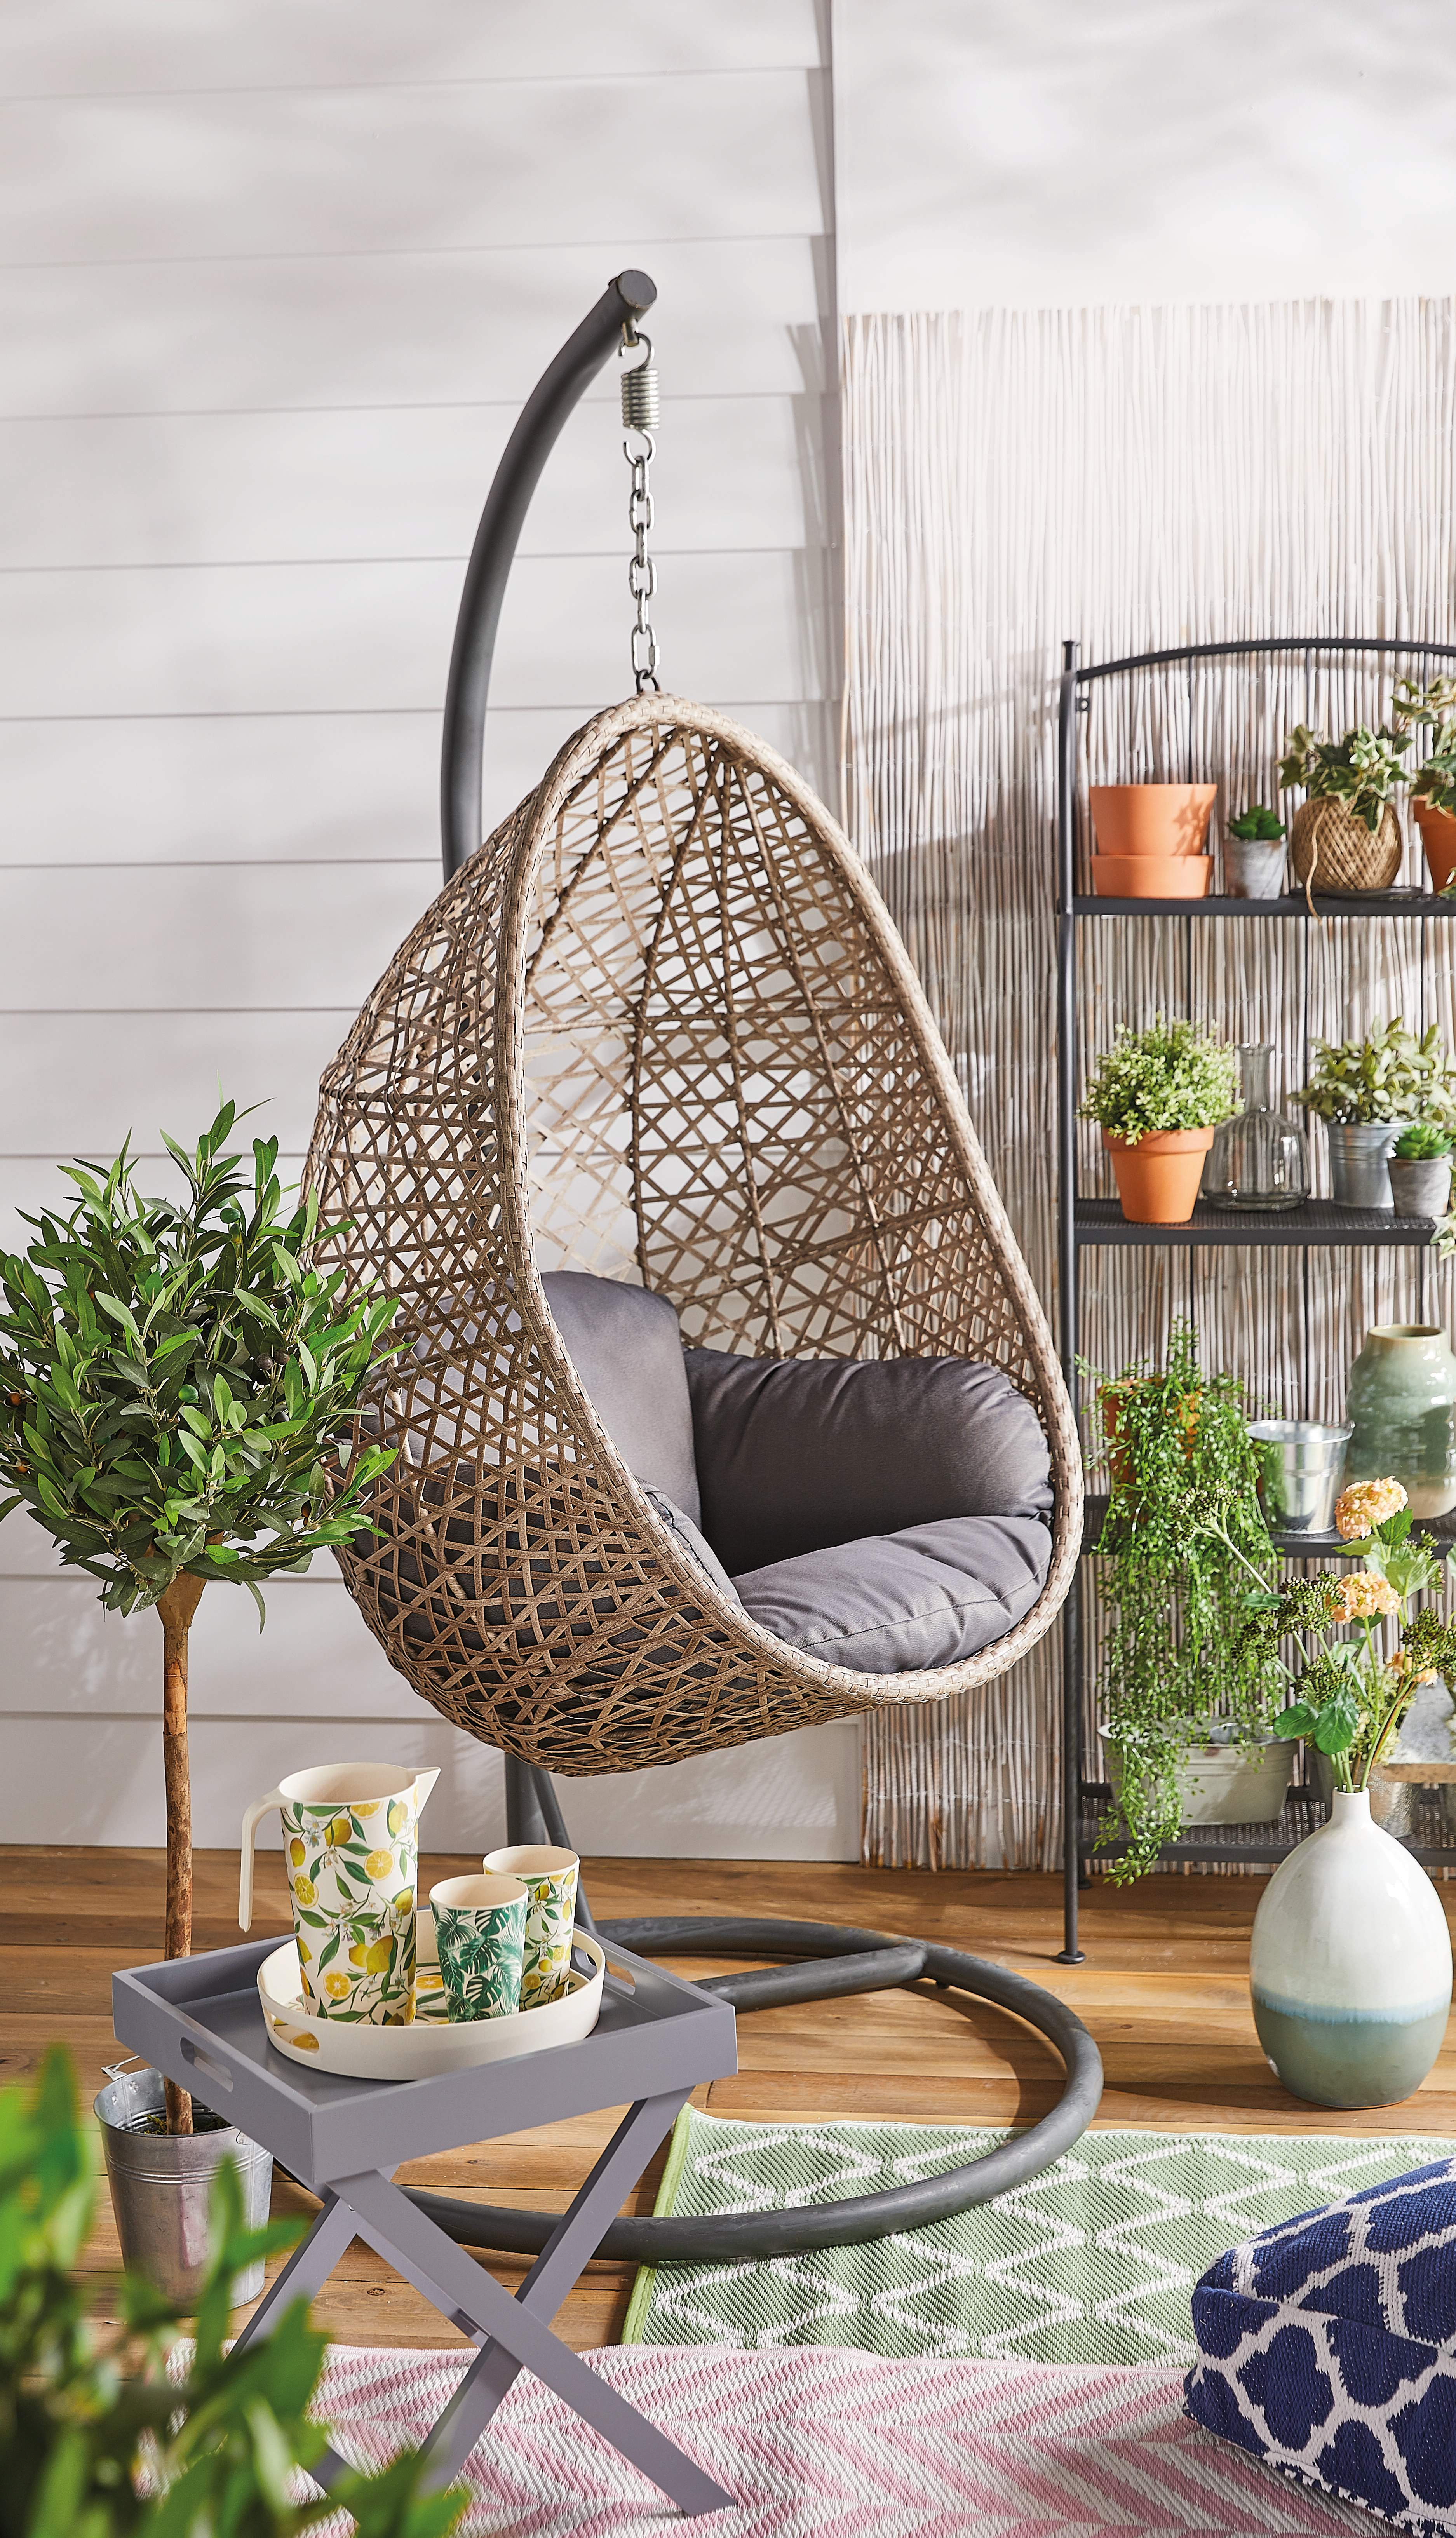 Hanging egg chairs (Aldi's version pictured) are hugely popular with celeb fans including Mrs Hinch and Stacey Solomon